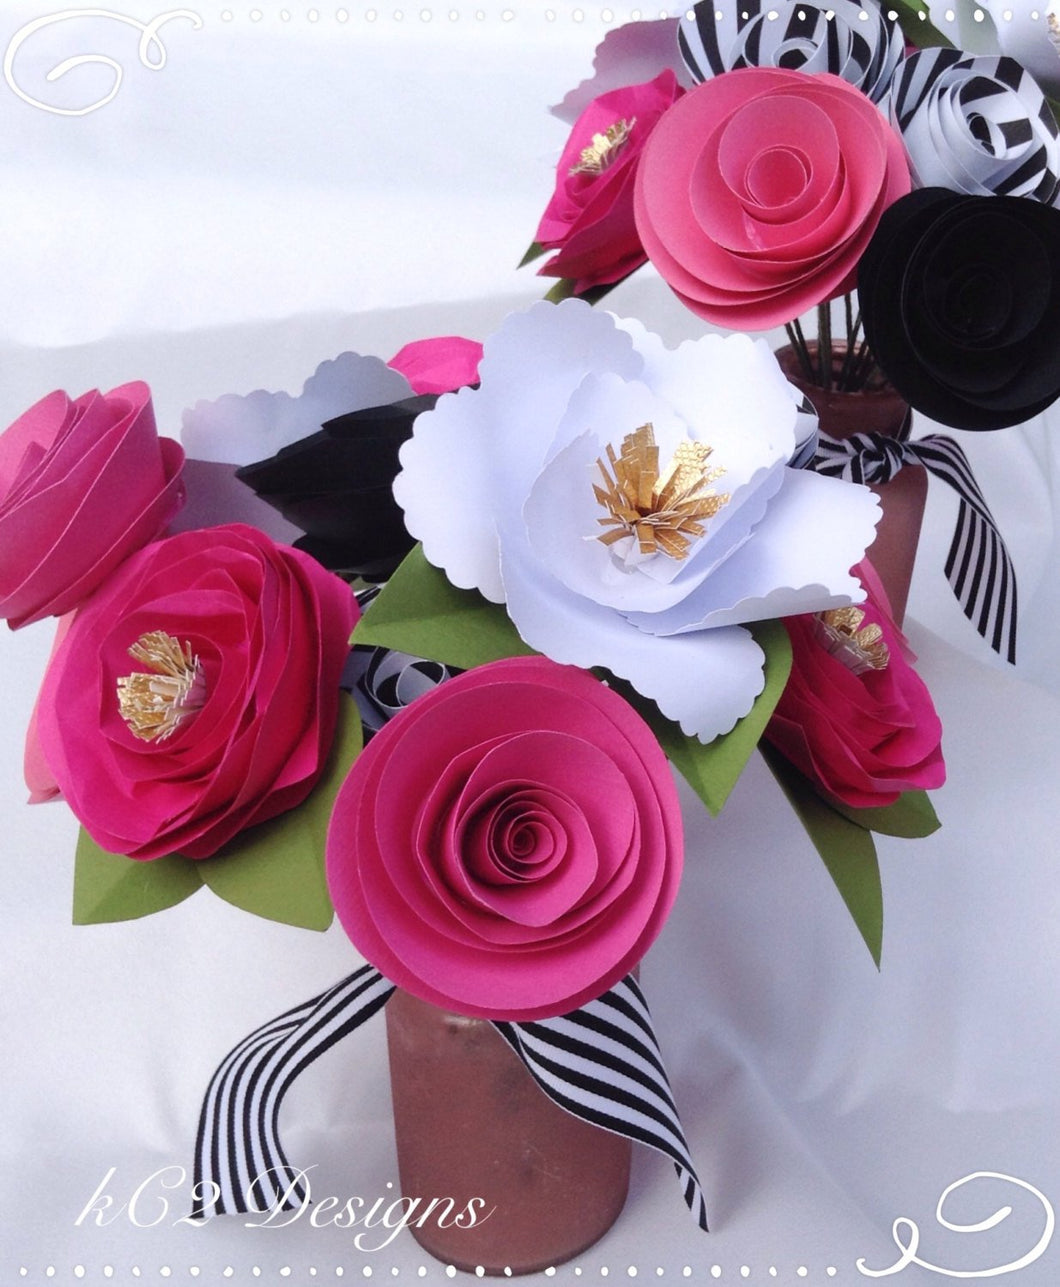 Paper Flowers Kate Spade Inspired Bridal Bouquet Centerpiece